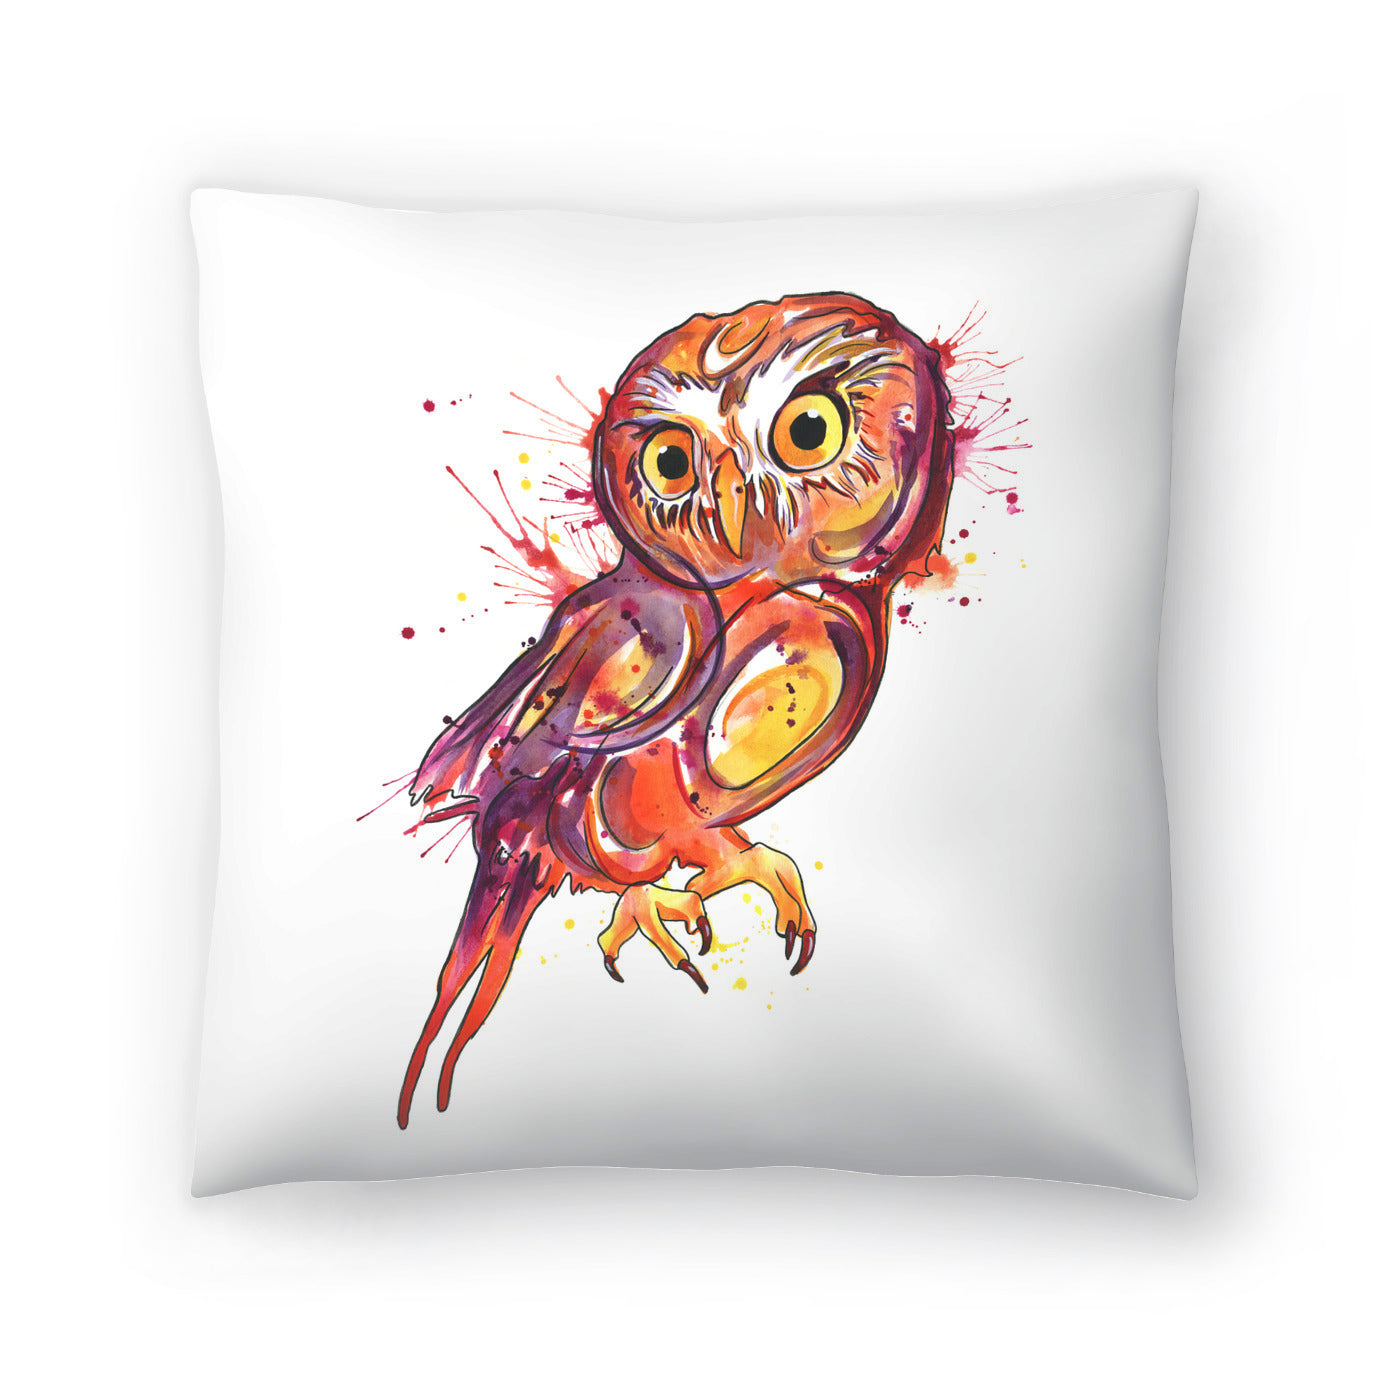 Red Owl by Sam Nagel Decorative Pillow - Decorative Pillow - Americanflat